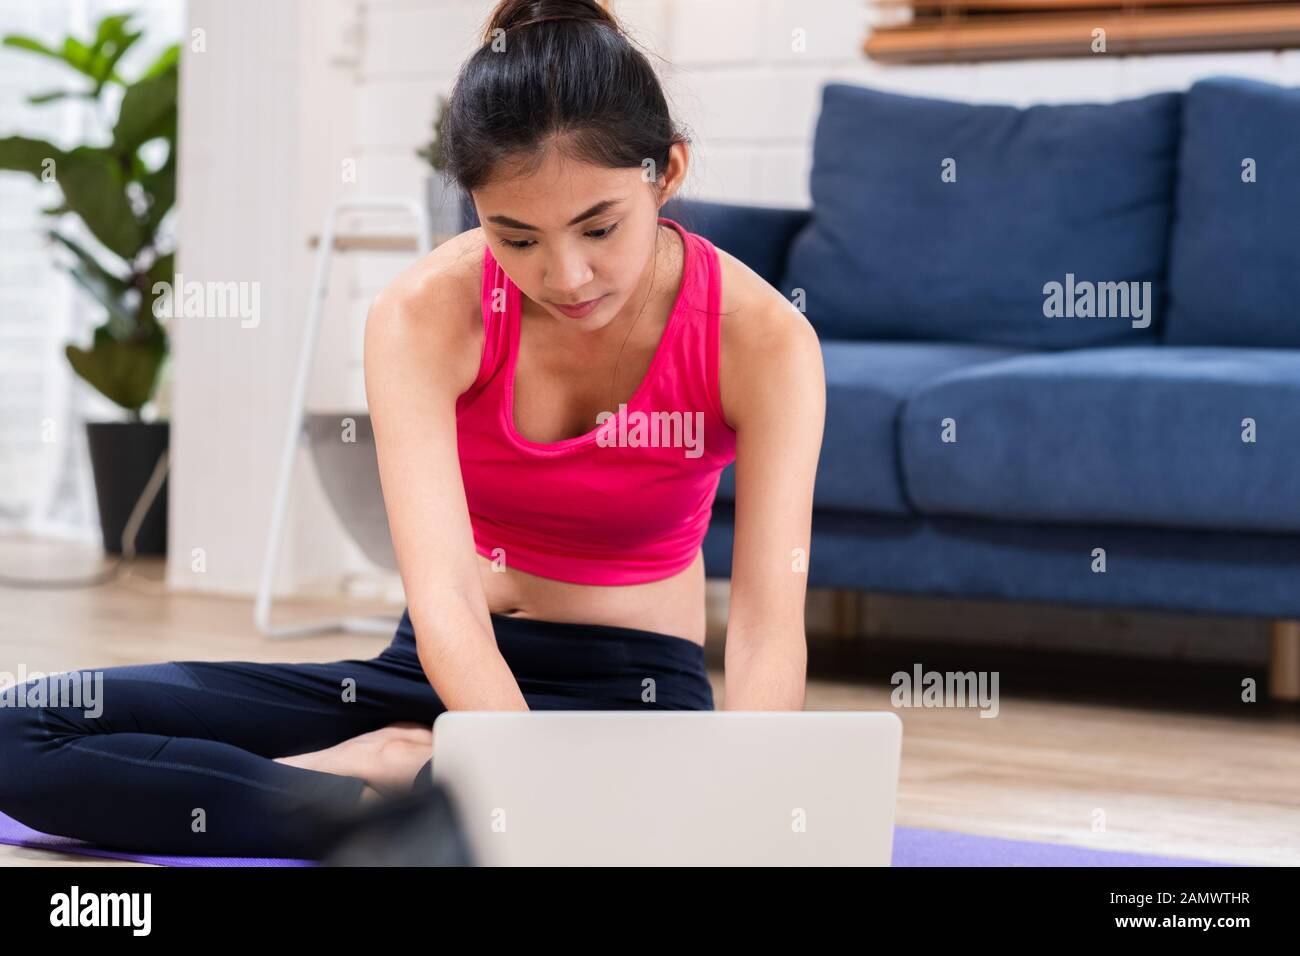 Asian Woman In Sportswear Sitting On Matt In Living Room And Training Yoga Exercises Online Video Tutorial On Laptop Stock Photo Alamy